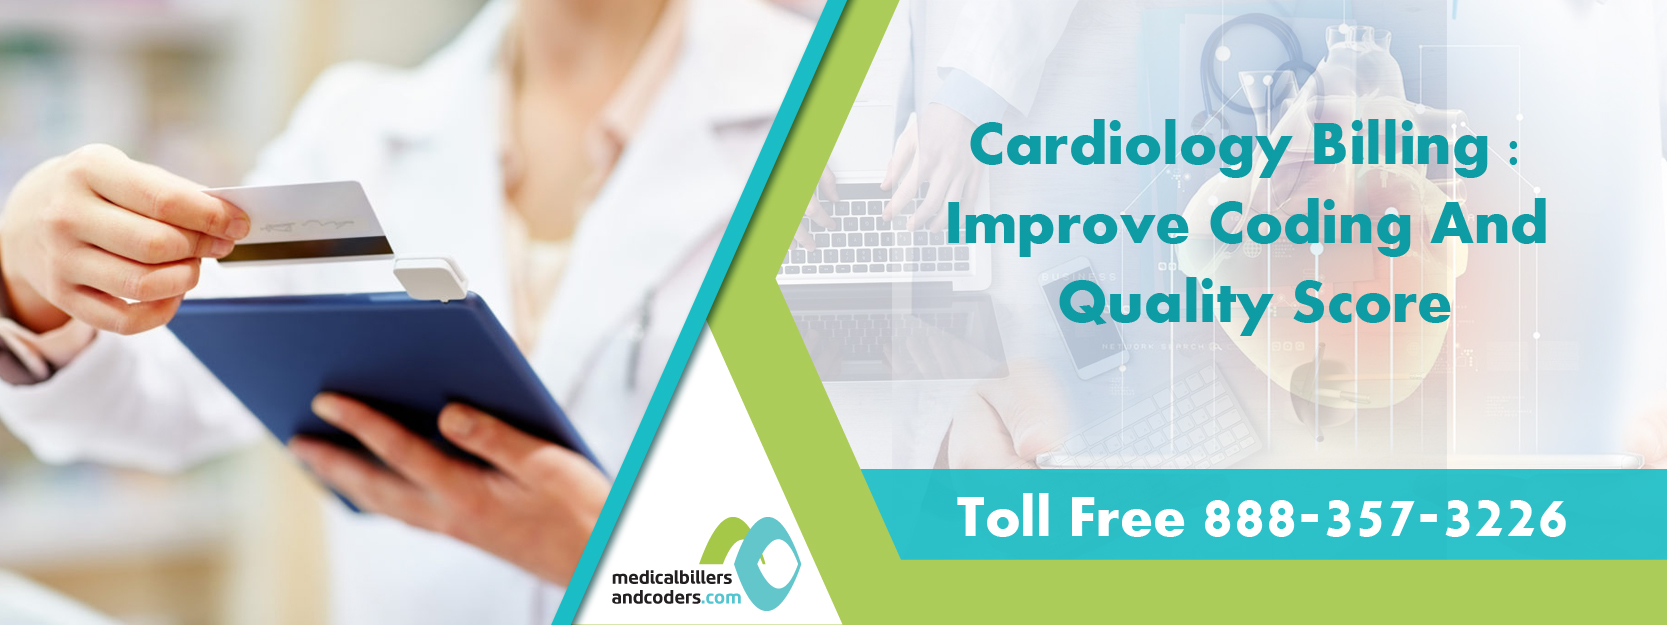 Cardiology-Billing-Improve-Coding-And-Quality-Score